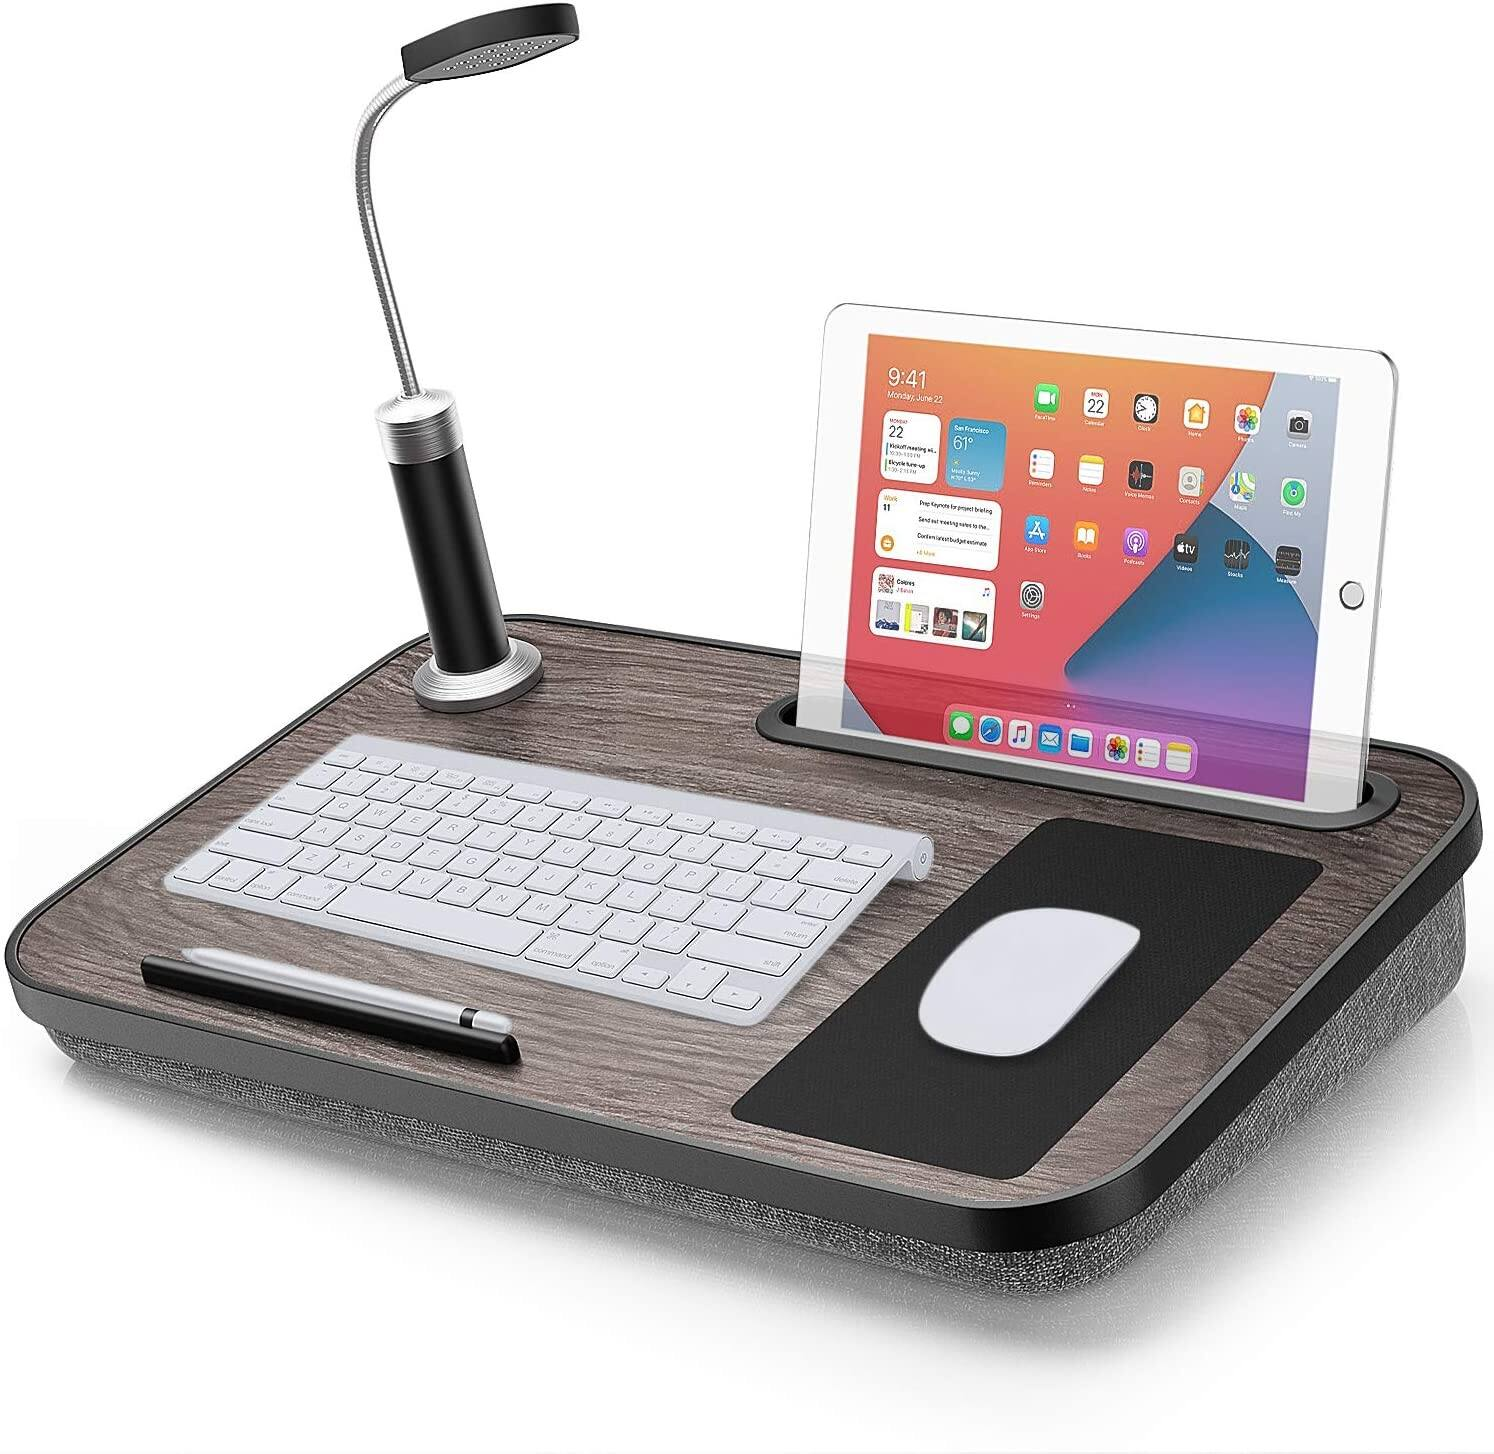 Laptop Lap Desk with Pillow Cushion & Light & Mouse Pad Fits Up to 15.6'' Laptops for $14.40 + Free Shipping w/ Prime or on $25+